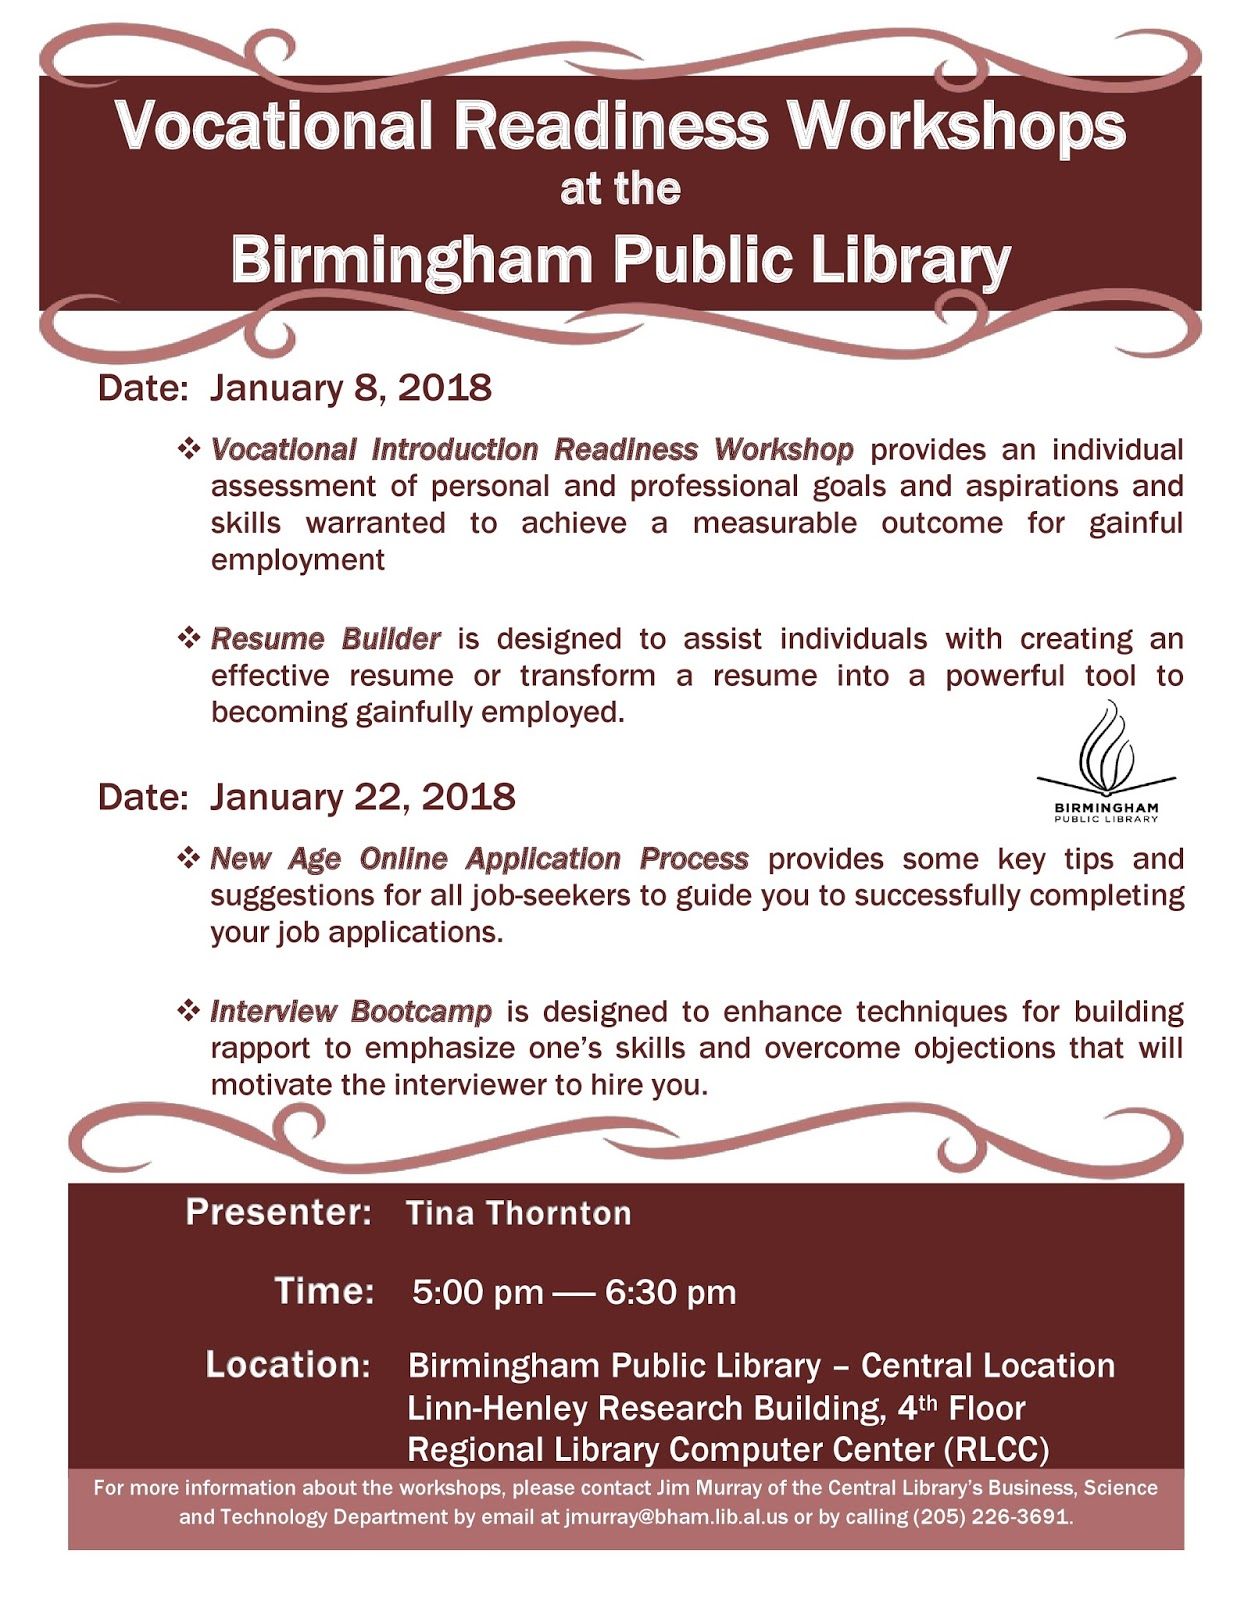 Birmingham Public Library Vocational Readiness Workshops in January